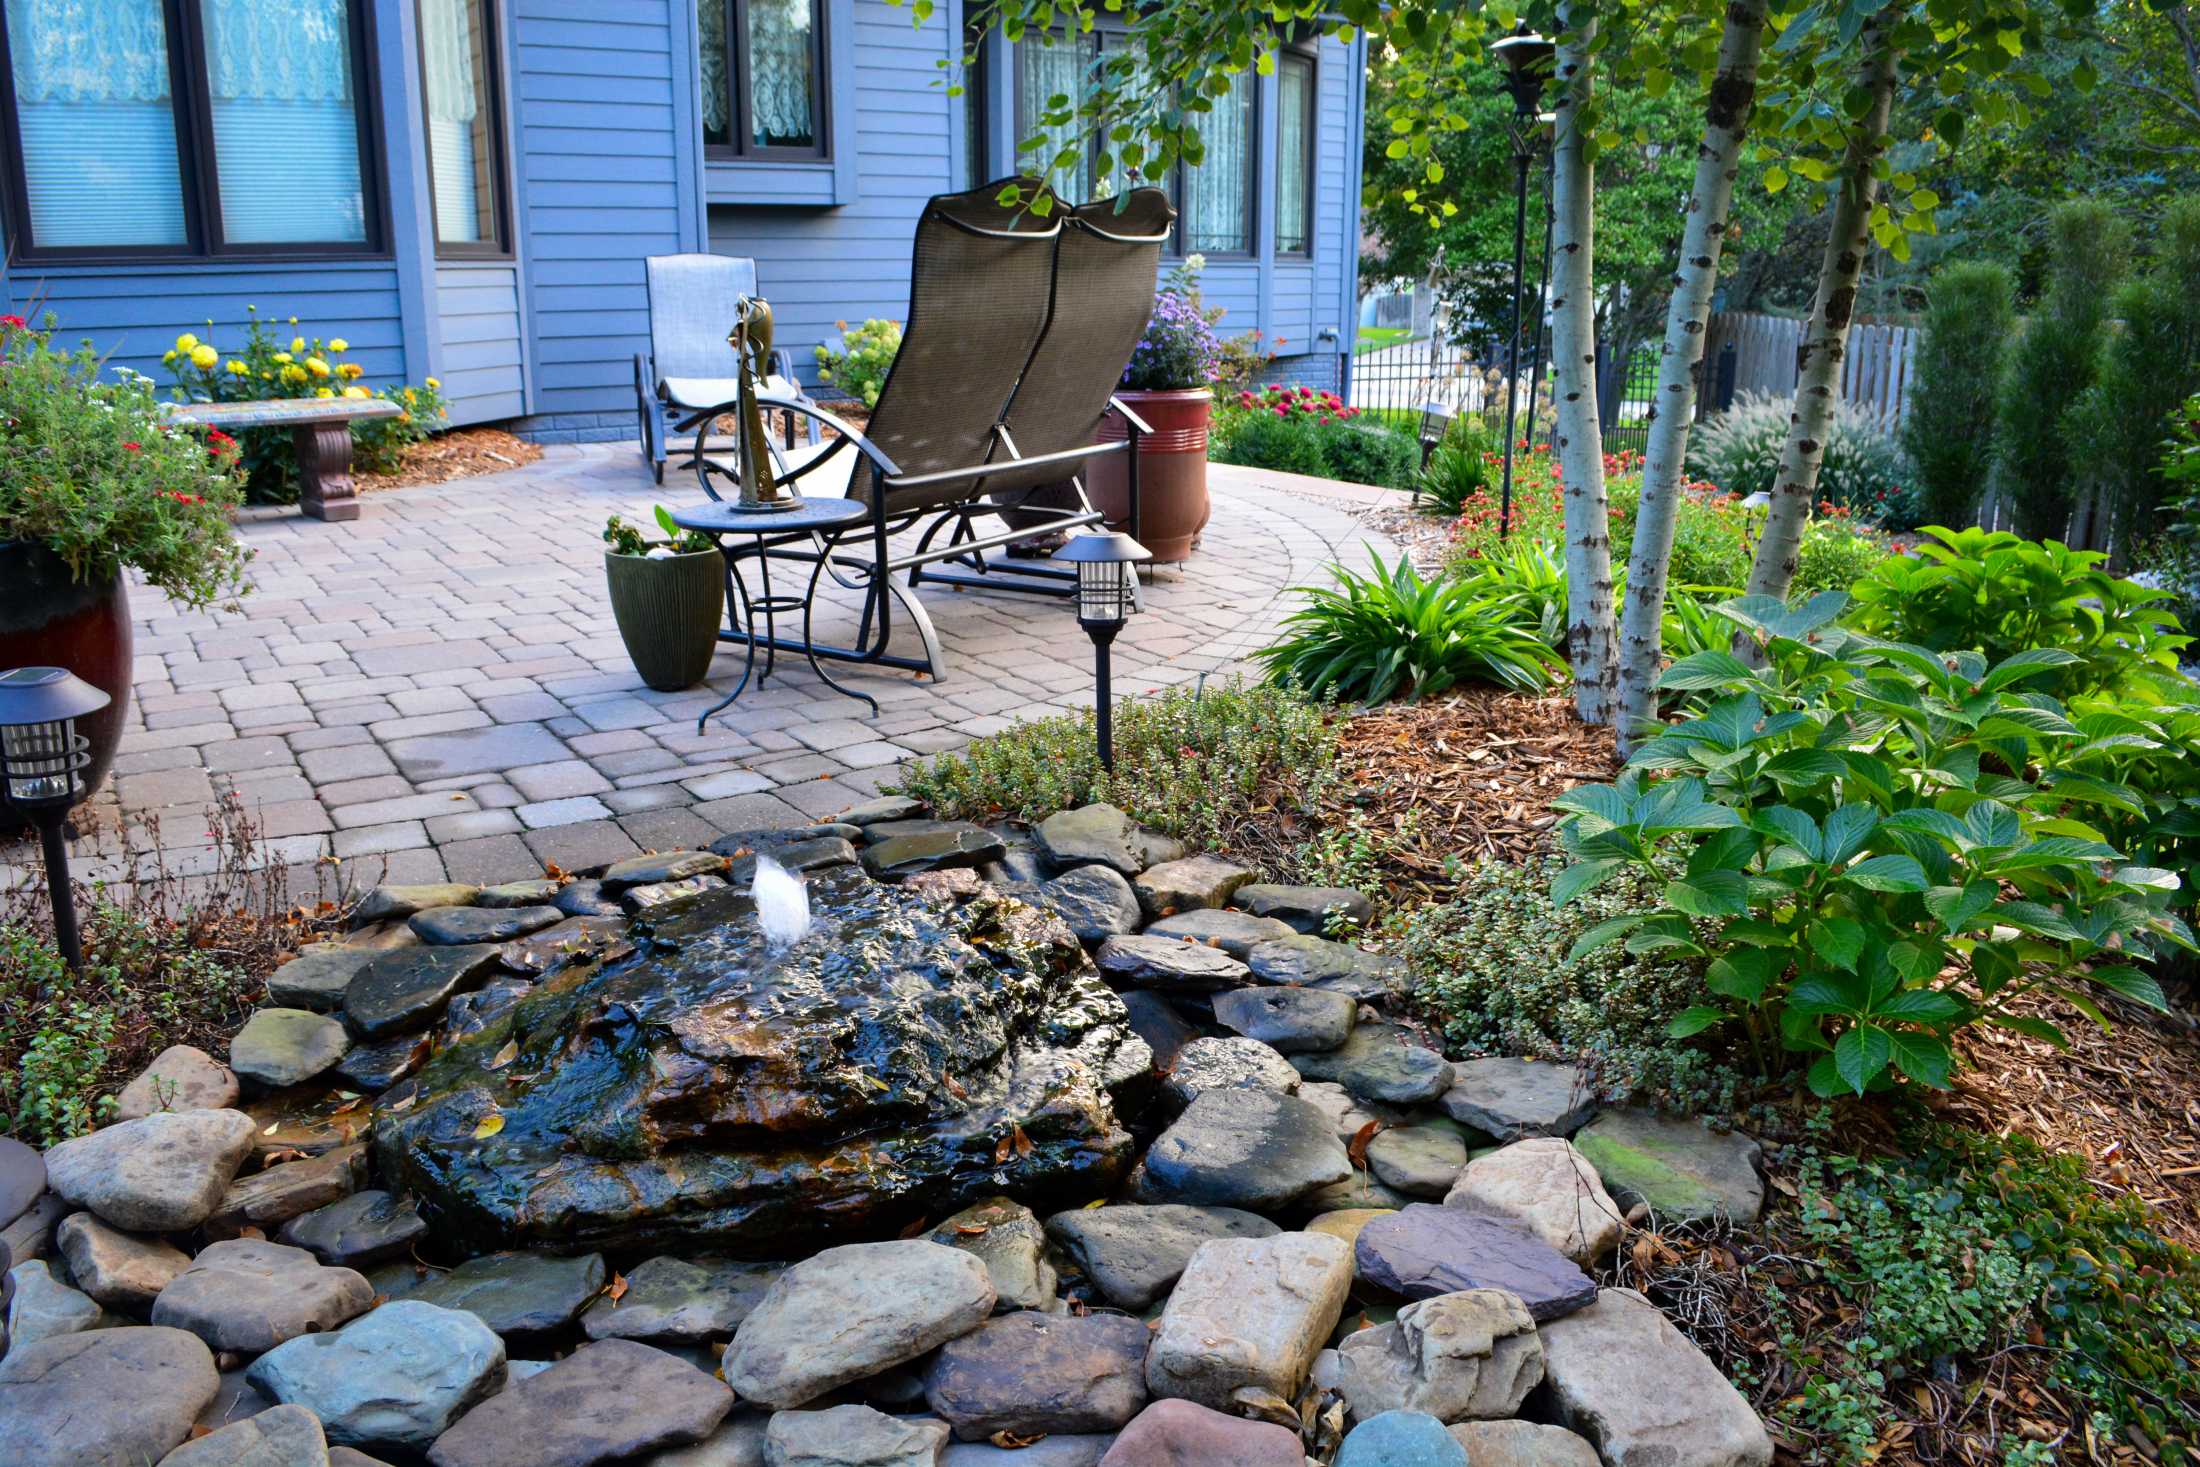 Chairs-fountain-and-patio